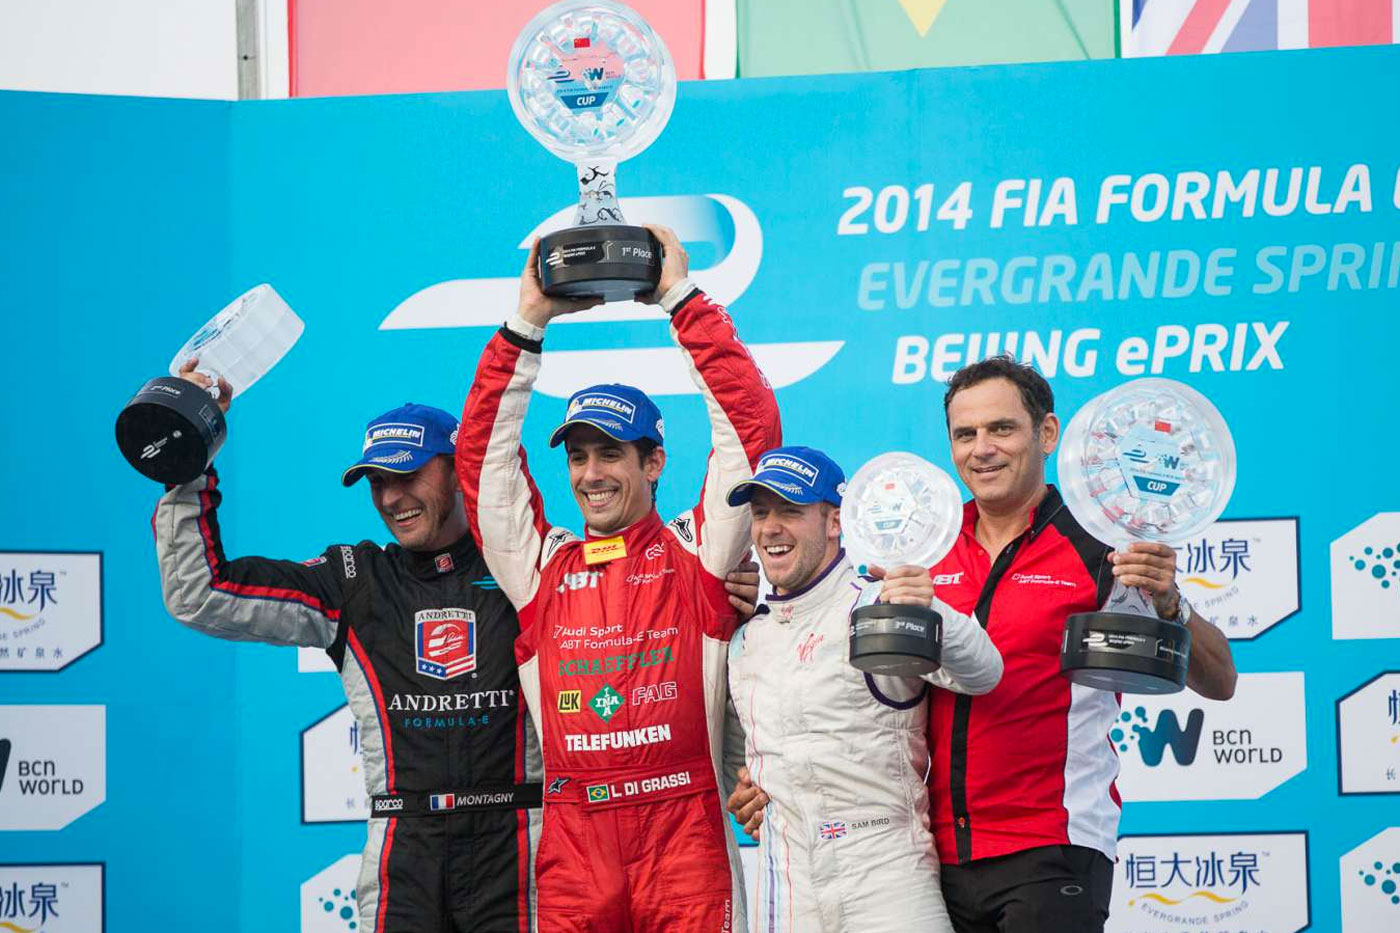 Dramatic crash gives di Grassi Formula E win